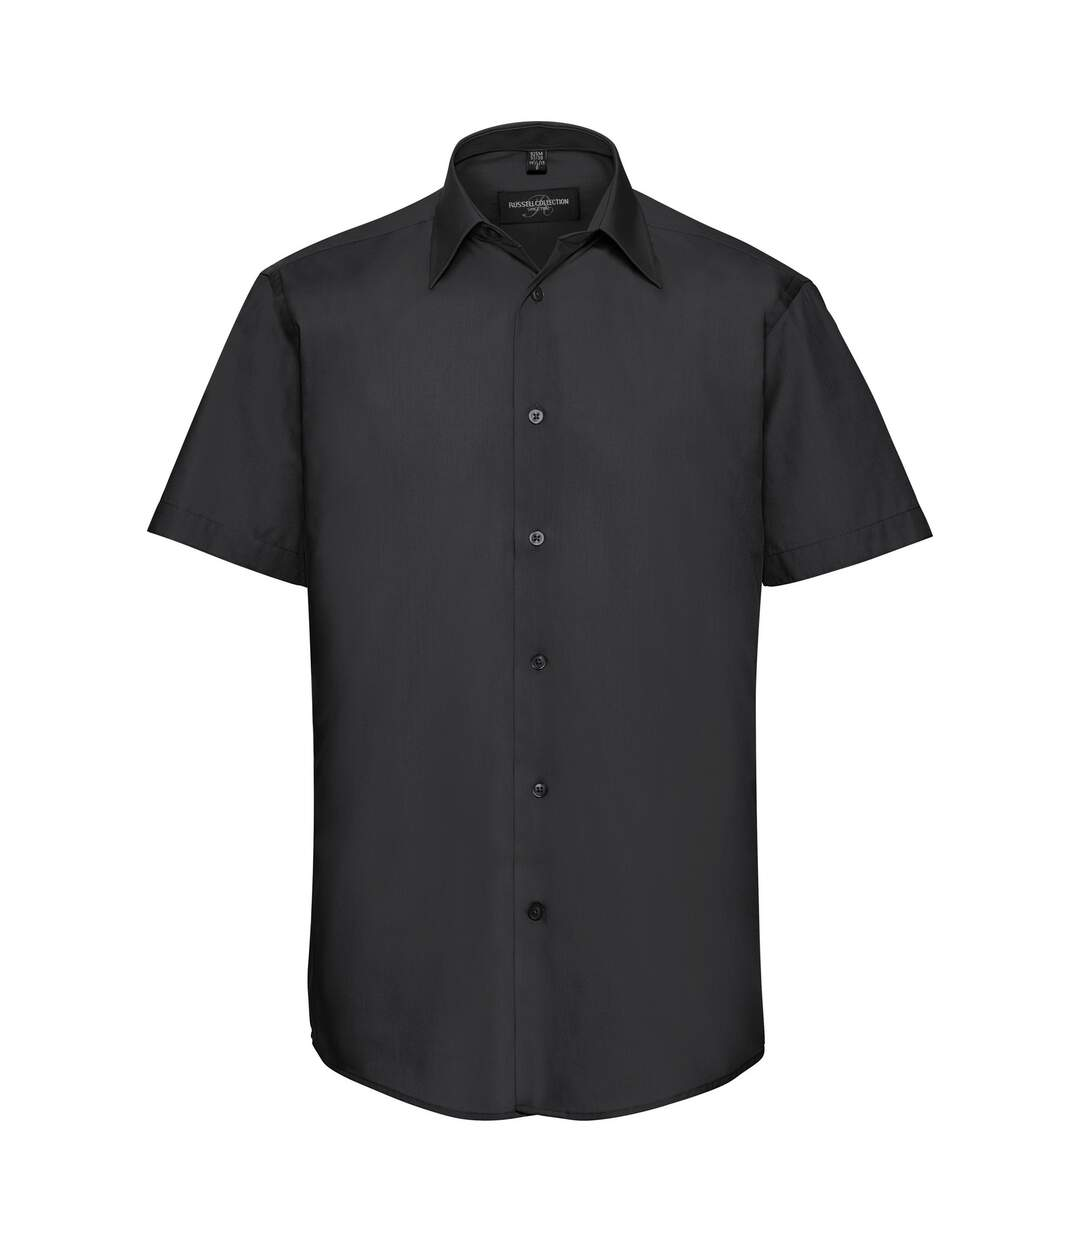 Russell Collection Mens Short Sleeve Poly-Cotton Easy Care Tailored Poplin Shirt (Black) - UTBC1020